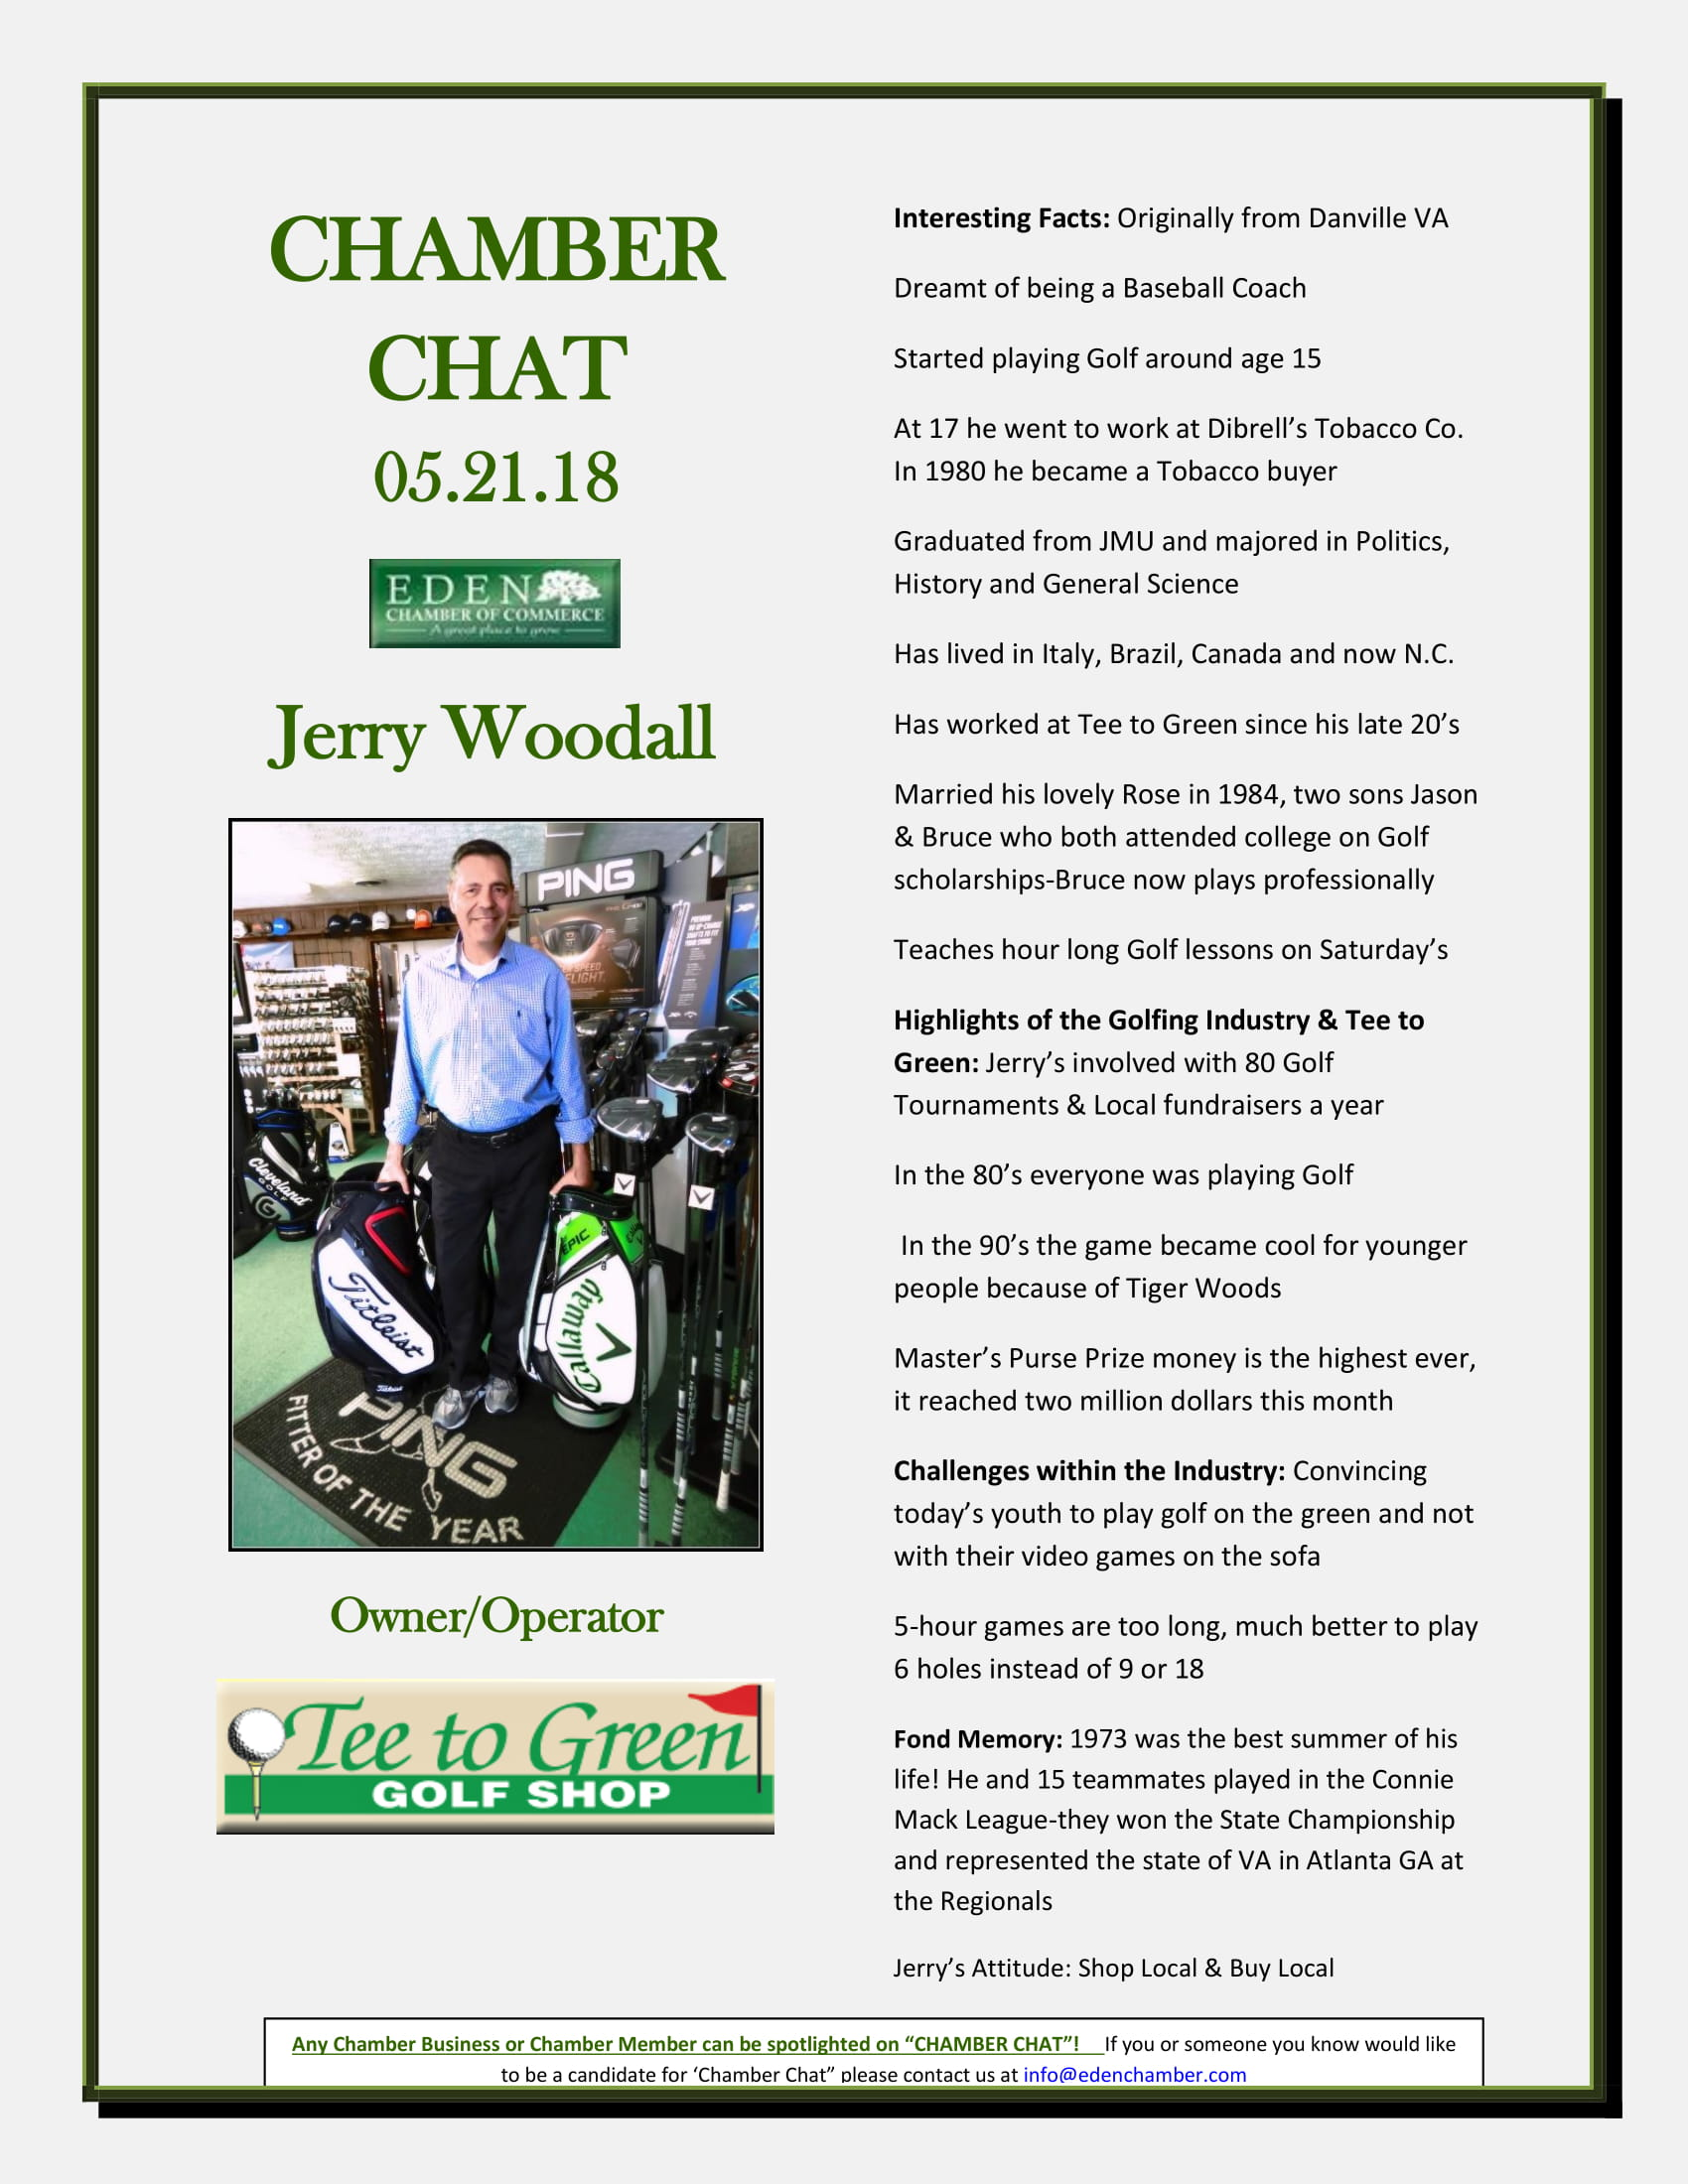 CHAMBER-CHAT-Tee-to-Green-Jerry-Woodall-(2)-1.jpg